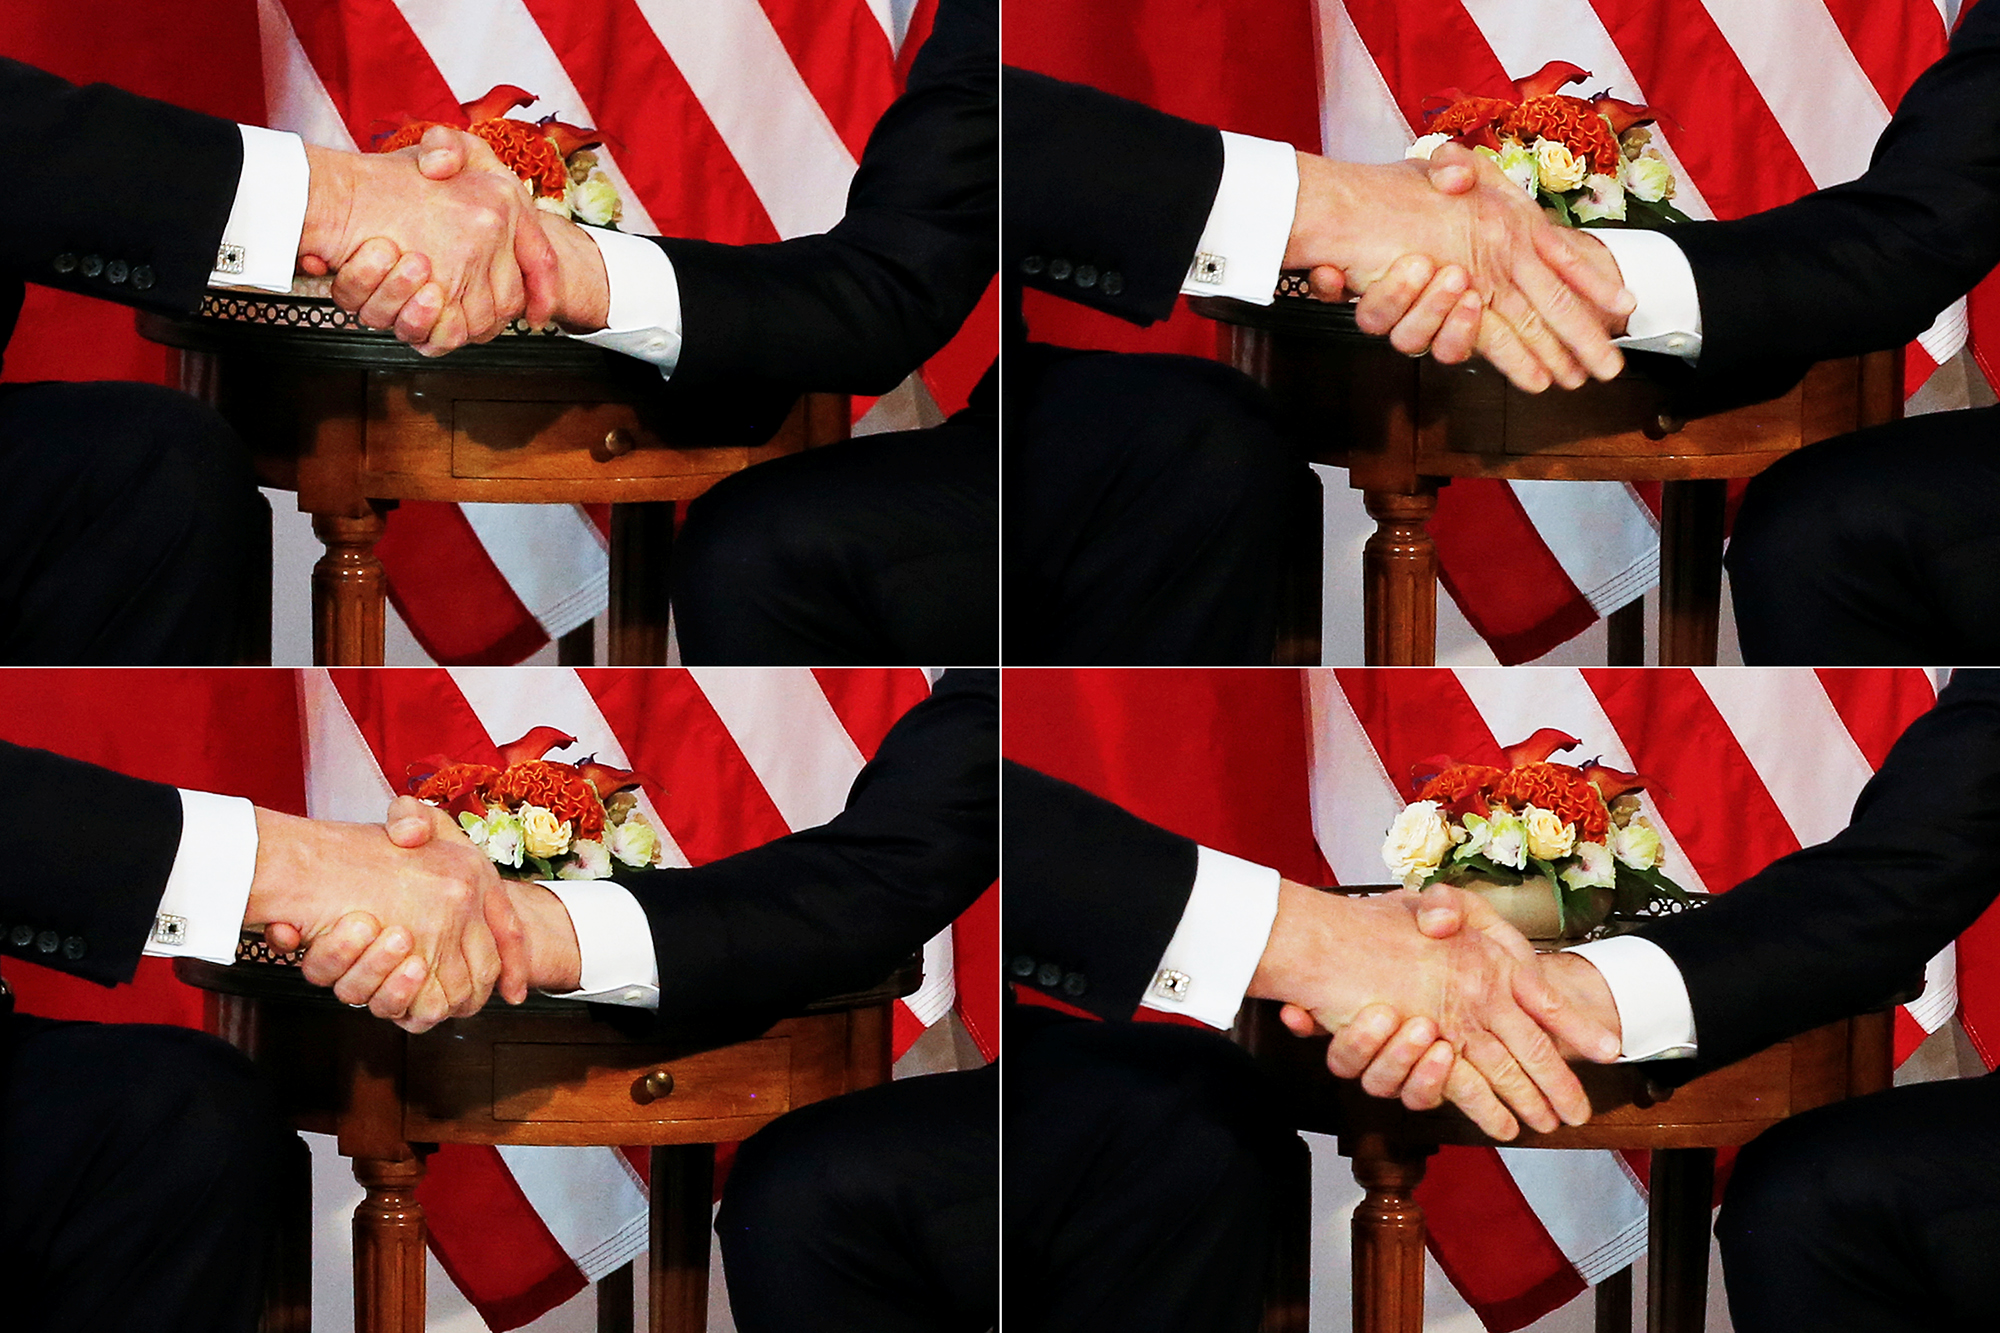 A combination photo shows Donald Trump, left, trying twice to let go of a handshake with France's President Emmanuel Macron in Brussels, on May 25, 2017.